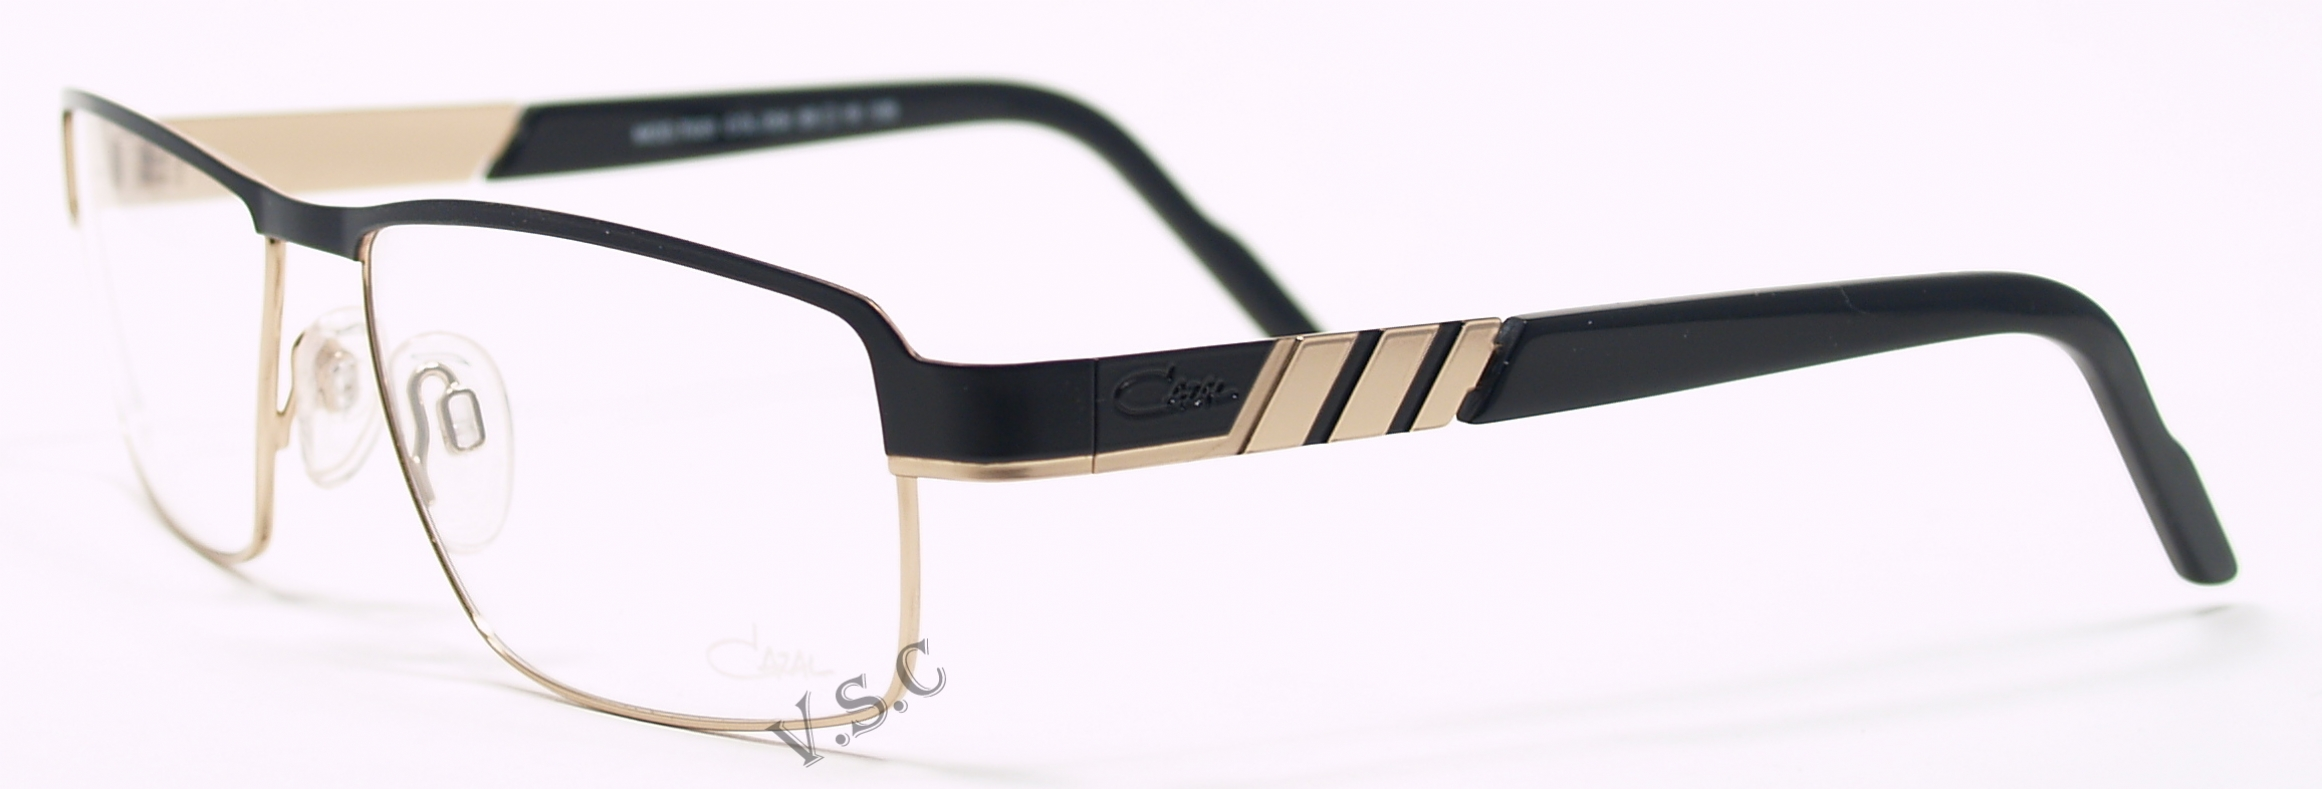 84ac3ad03f Buy Cazal Eyeglasses directly from OpticsFast.com